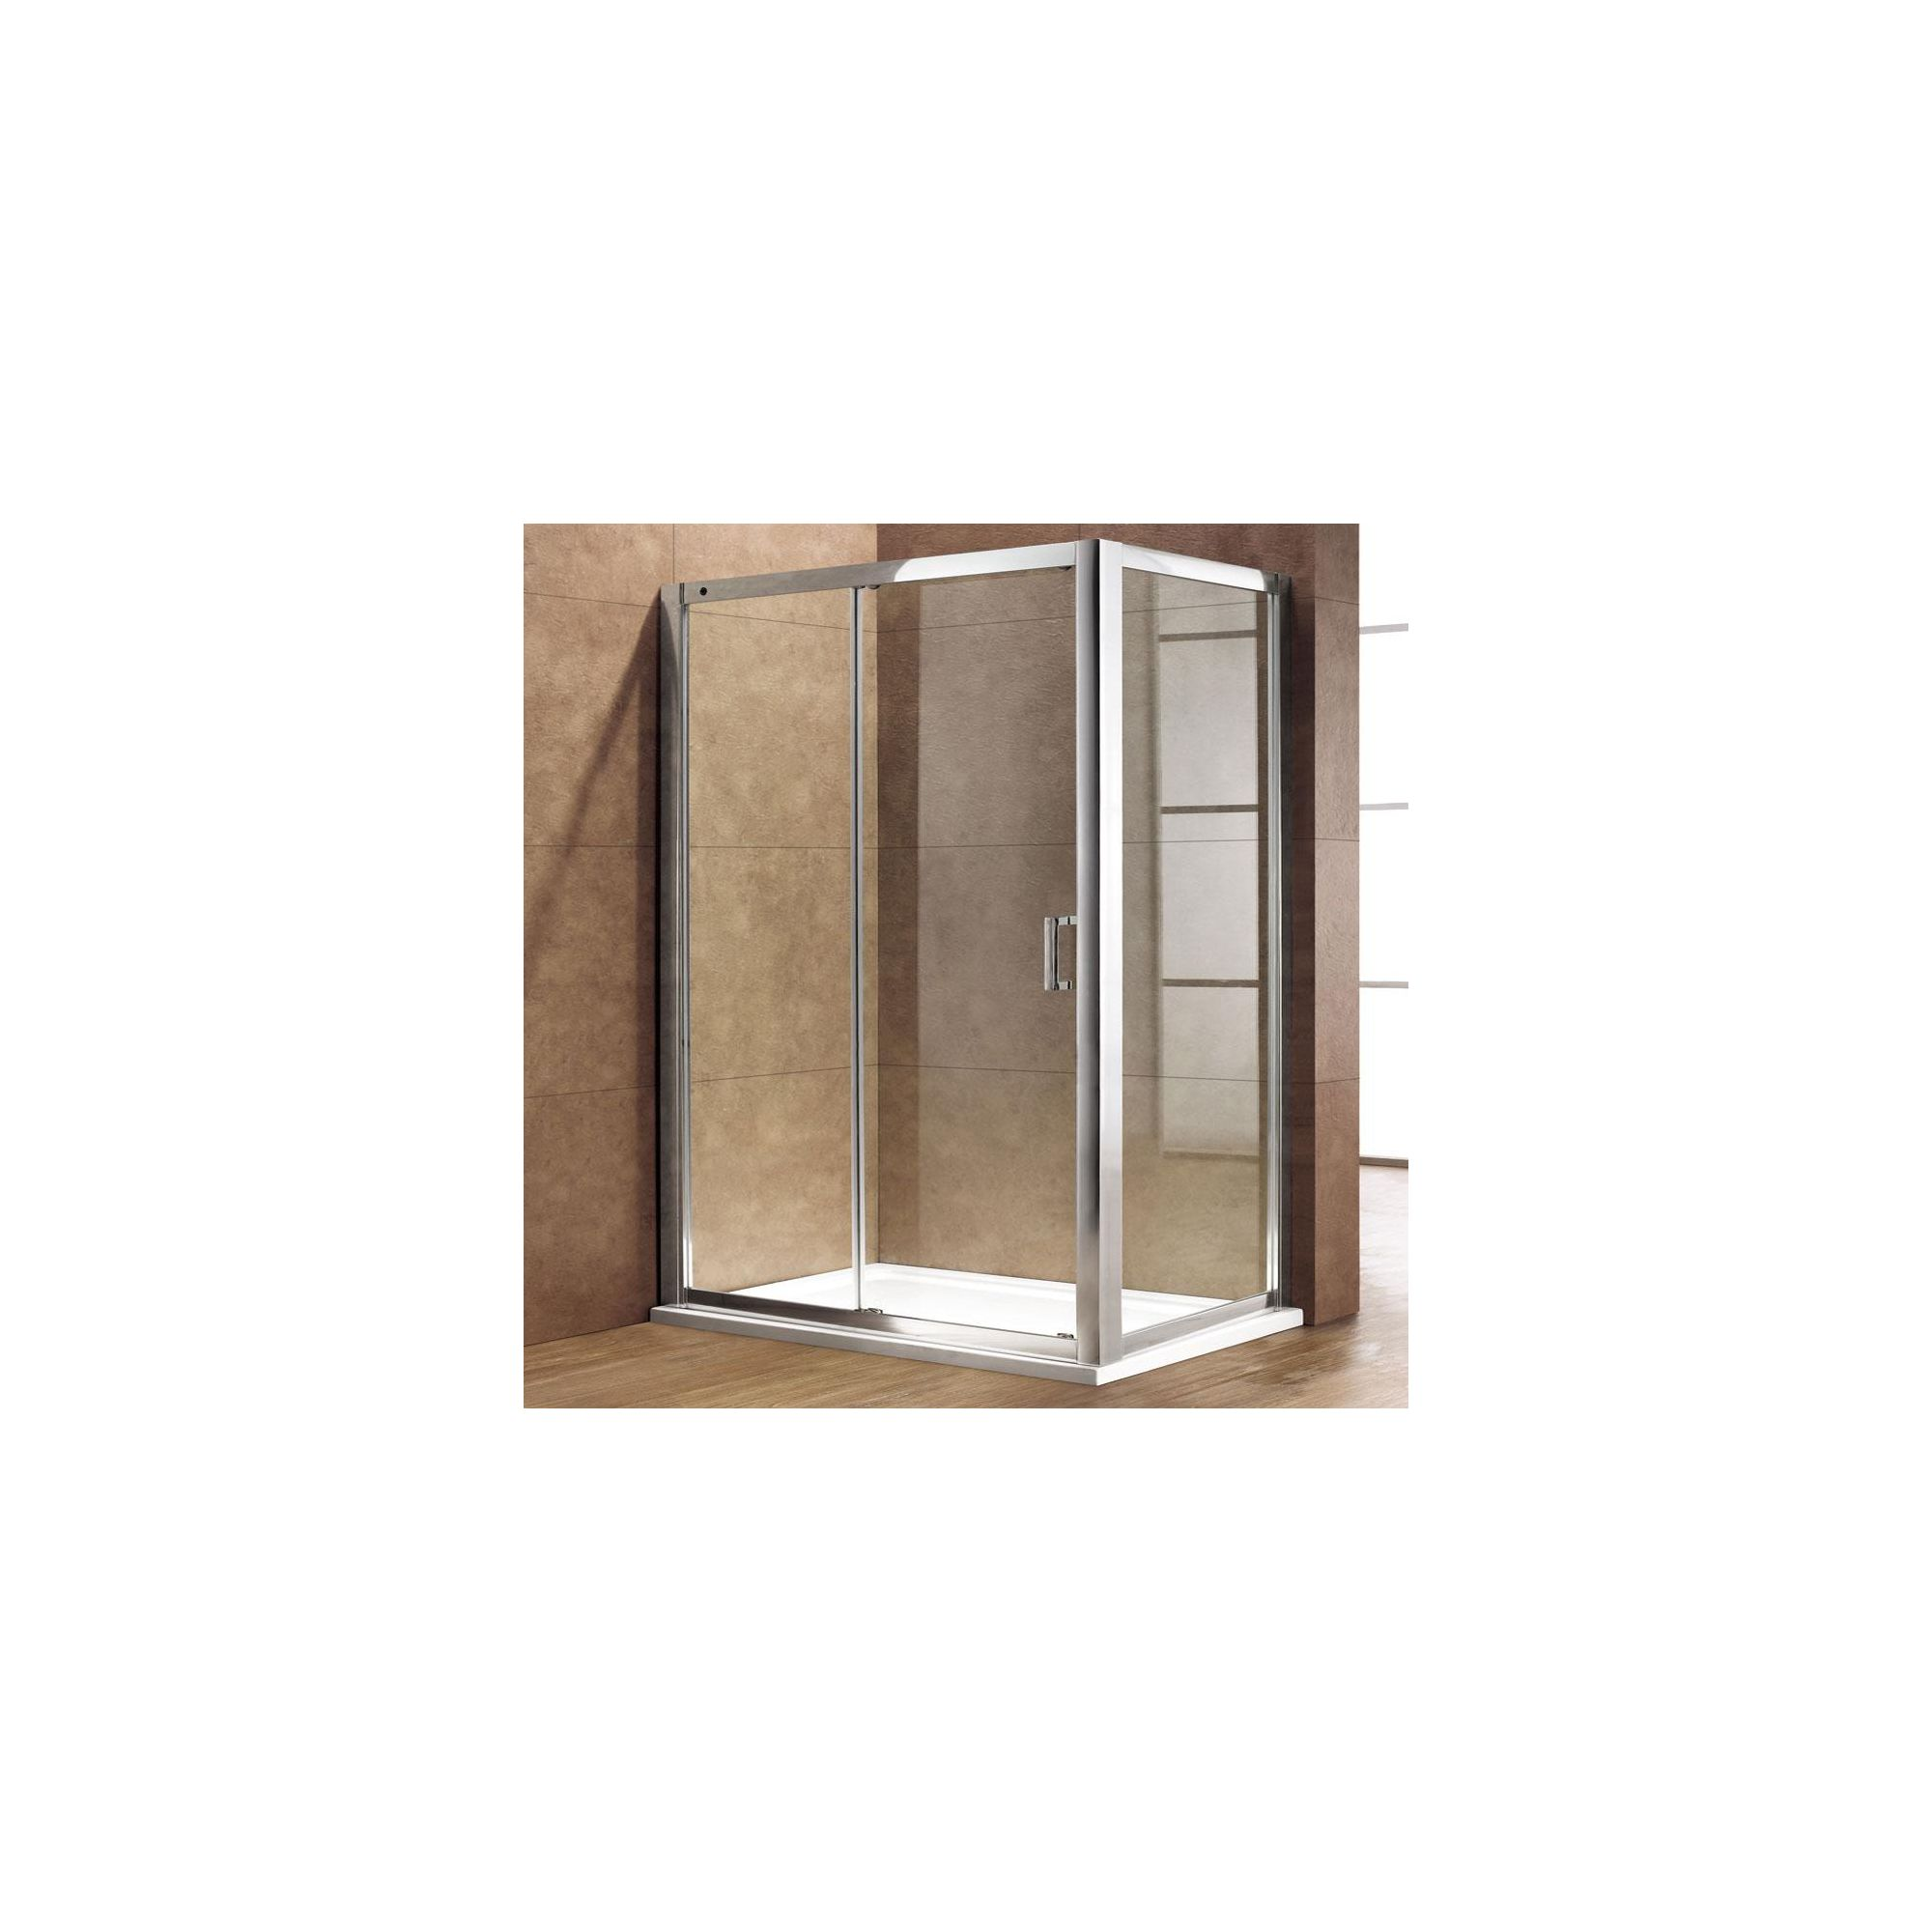 Duchy Premium Single Sliding Door Shower Enclosure, 1400mm x 800mm, 8mm Glass, Low Profile Tray at Tesco Direct